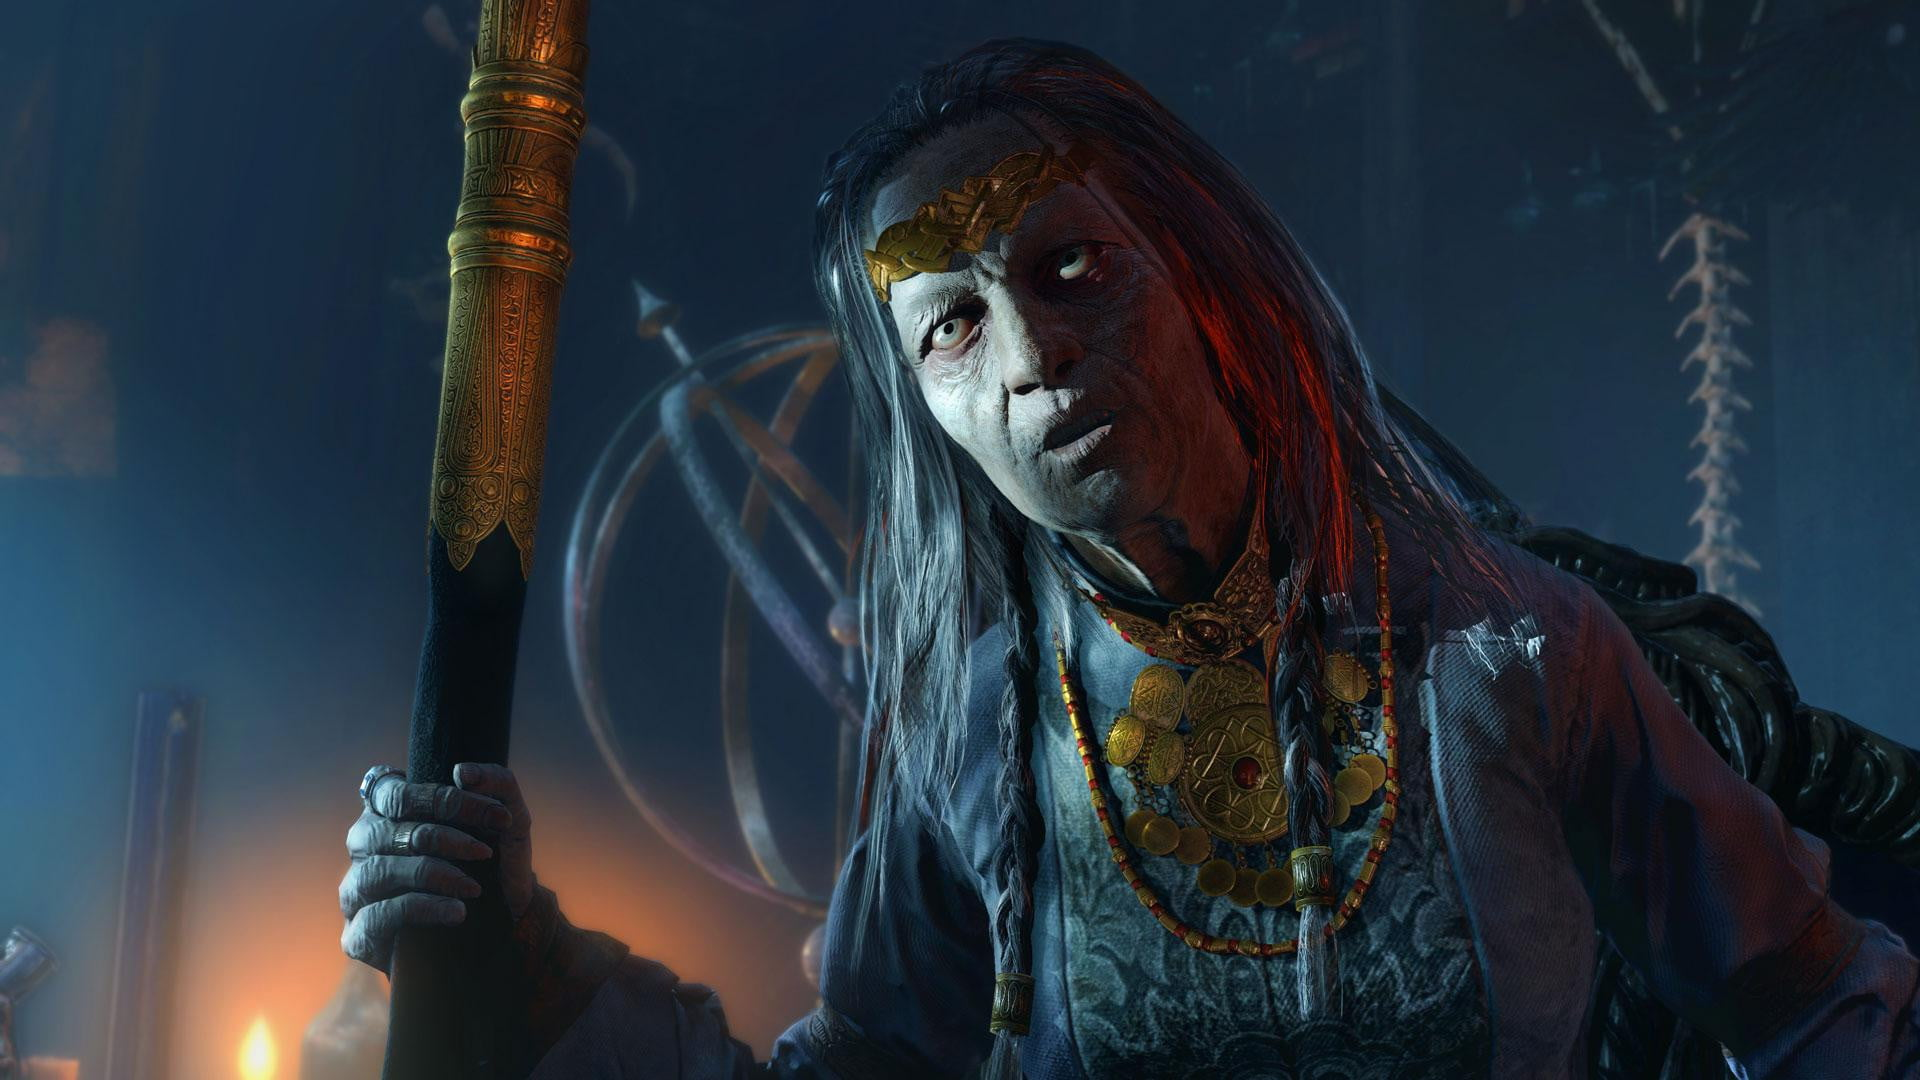 Middle-earth: Shadow of Mordor hands-on with the Nemesis System | Digital Trends